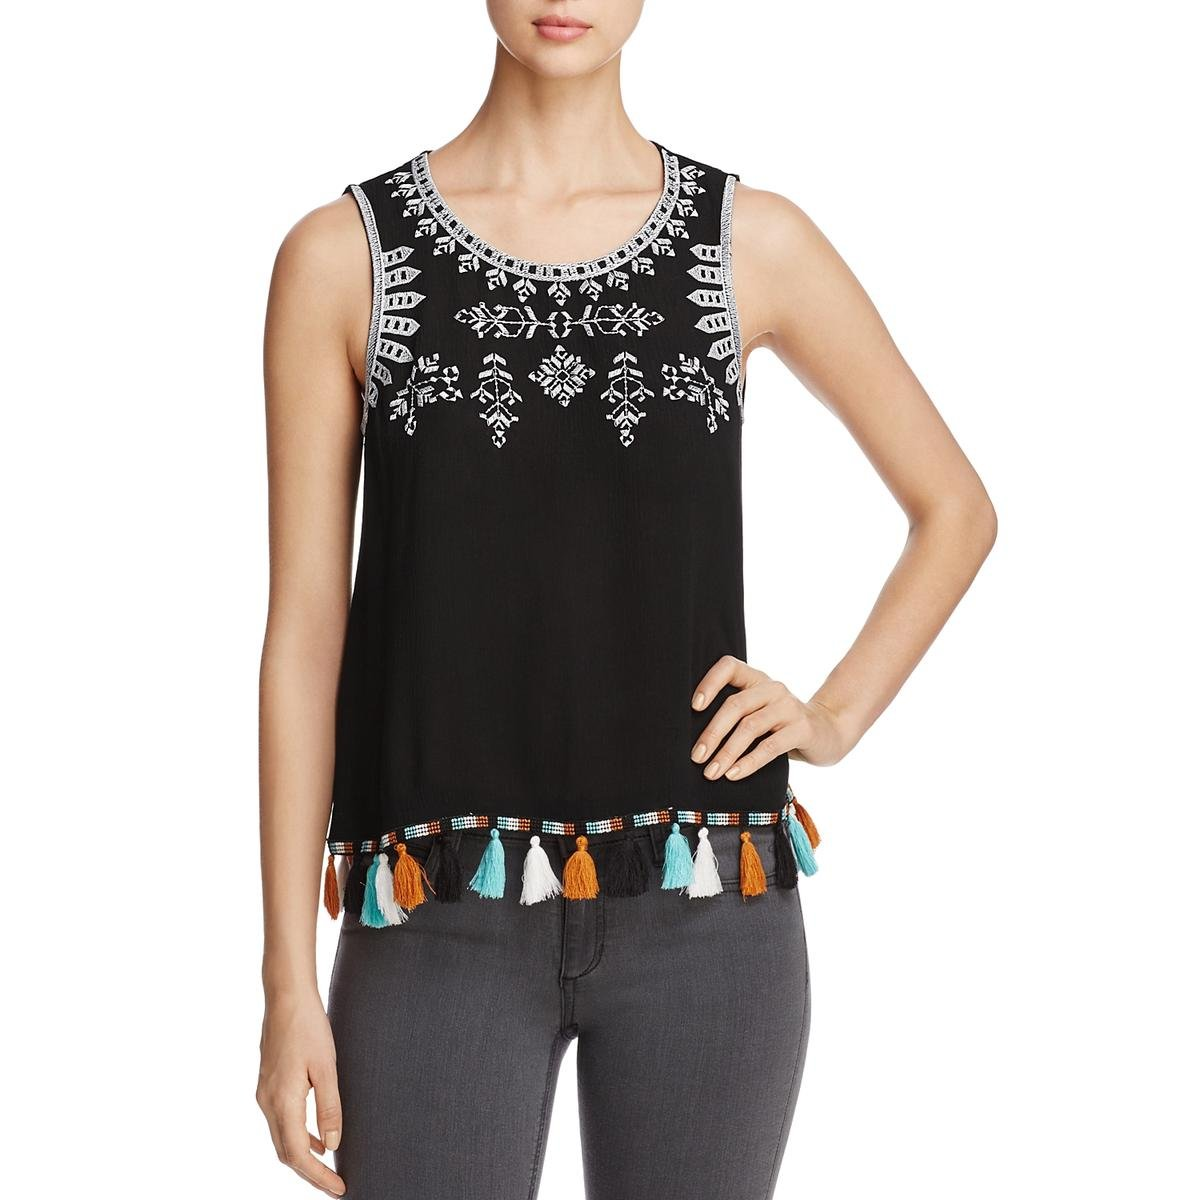 Status by Chenault Womens Embroidered Sleeveless Muscle Tank